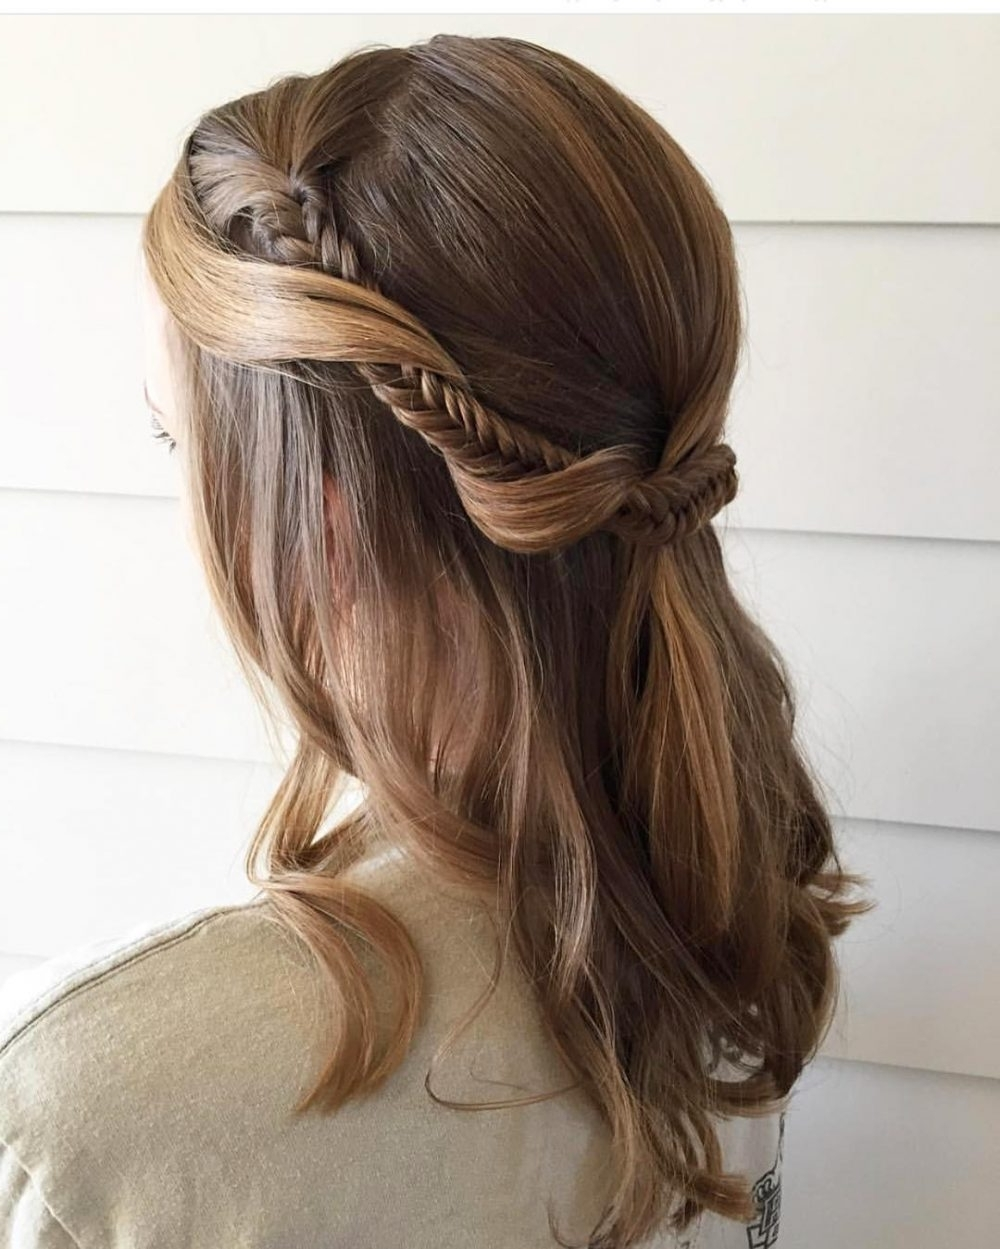 33 Ridiculously Easy Diy Chic Updos With Easy Updo Hairstyles (View 5 of 15)